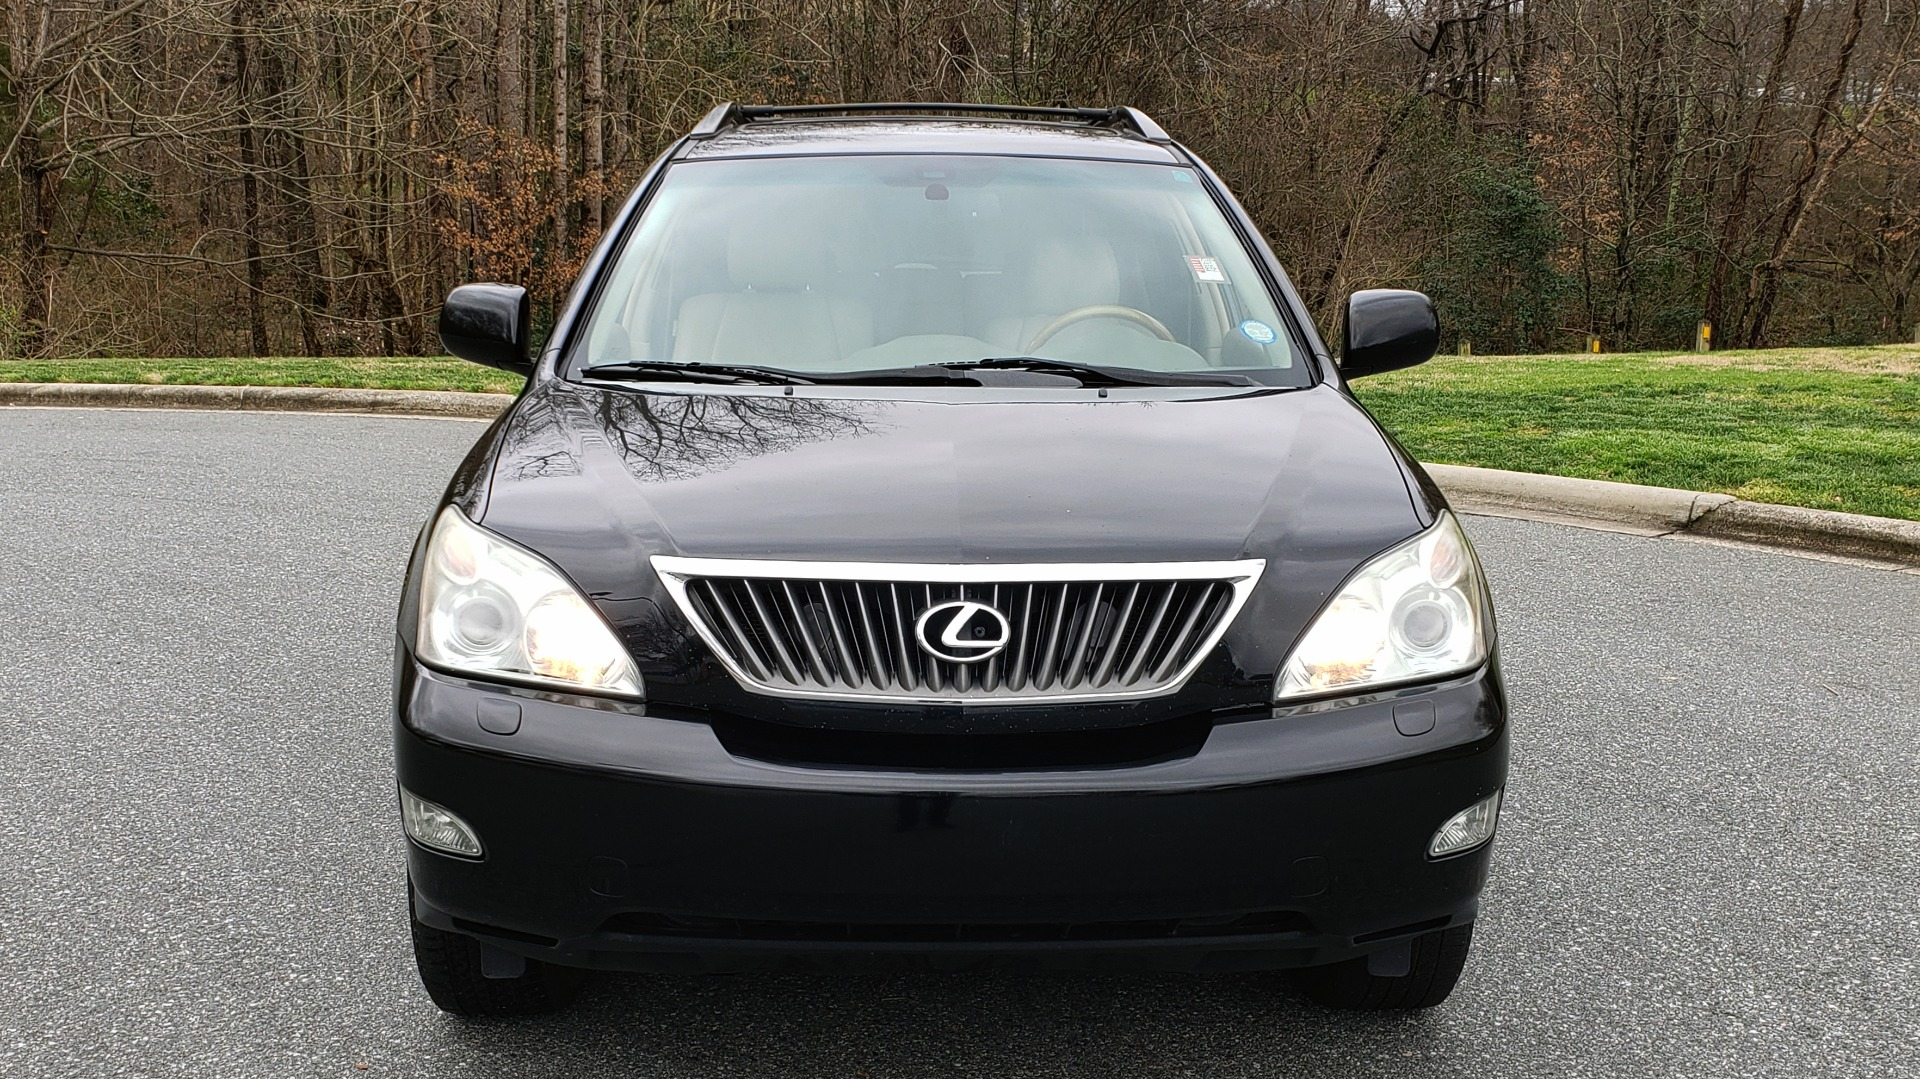 Used 2008 Lexus RX 350 LUXURY EDITION / NAV / SUNROOF / REARVIEW for sale Sold at Formula Imports in Charlotte NC 28227 22